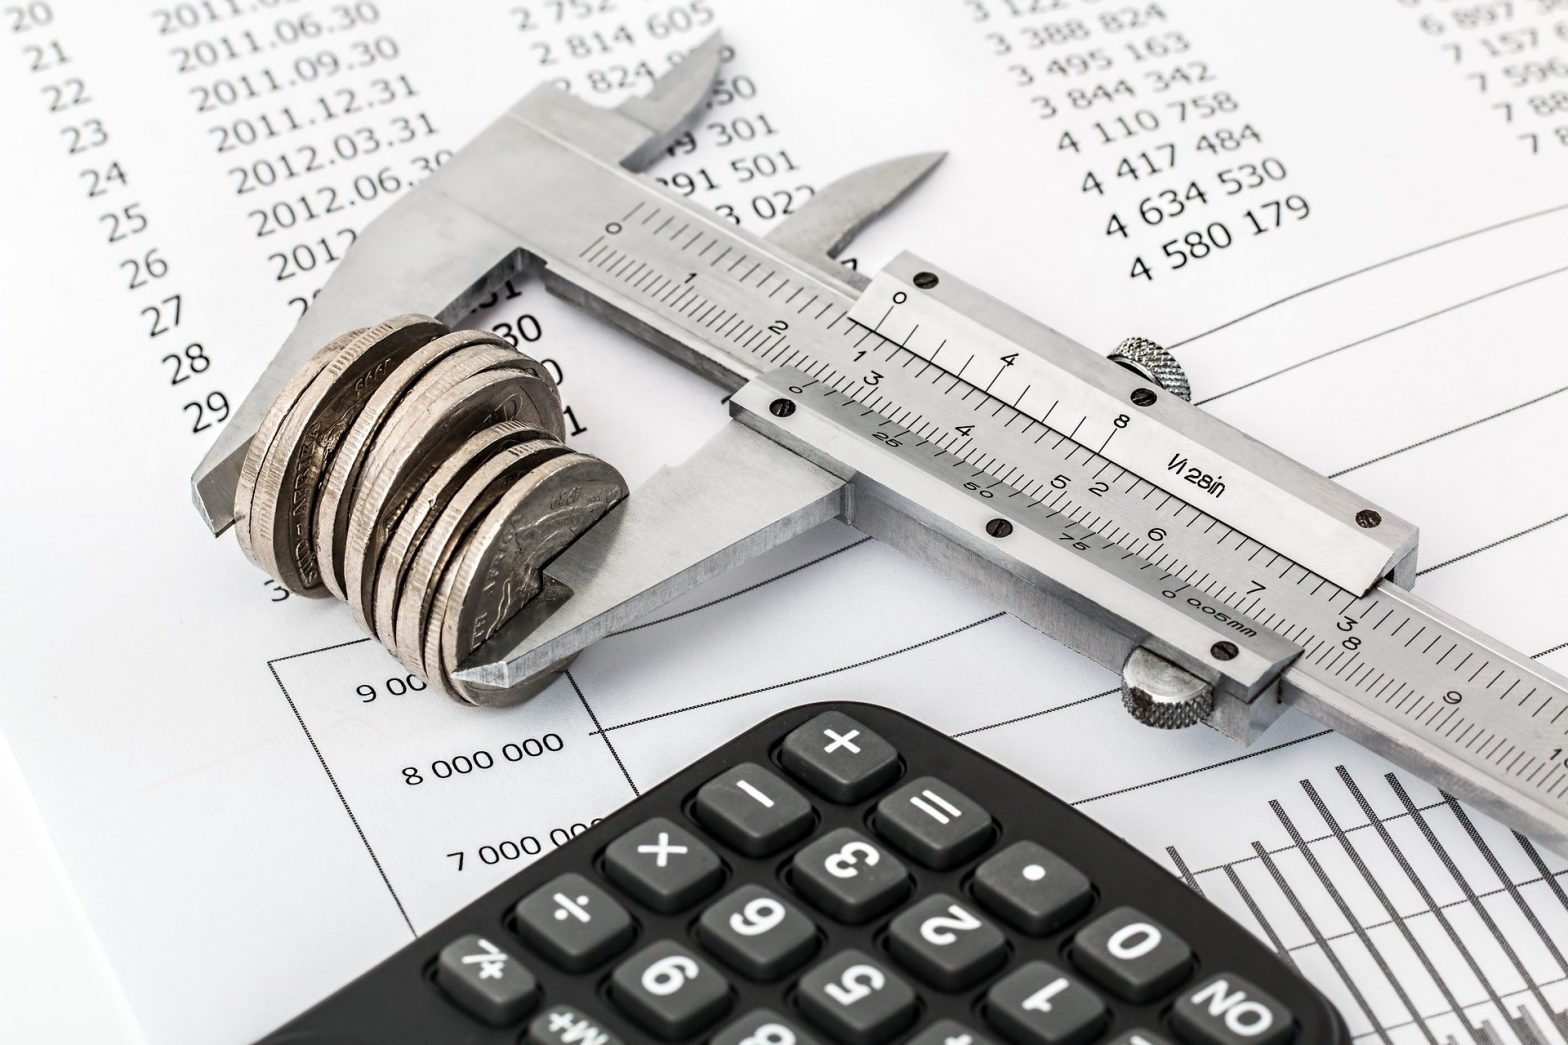 bank statement, calculator and small pile of coins being measured